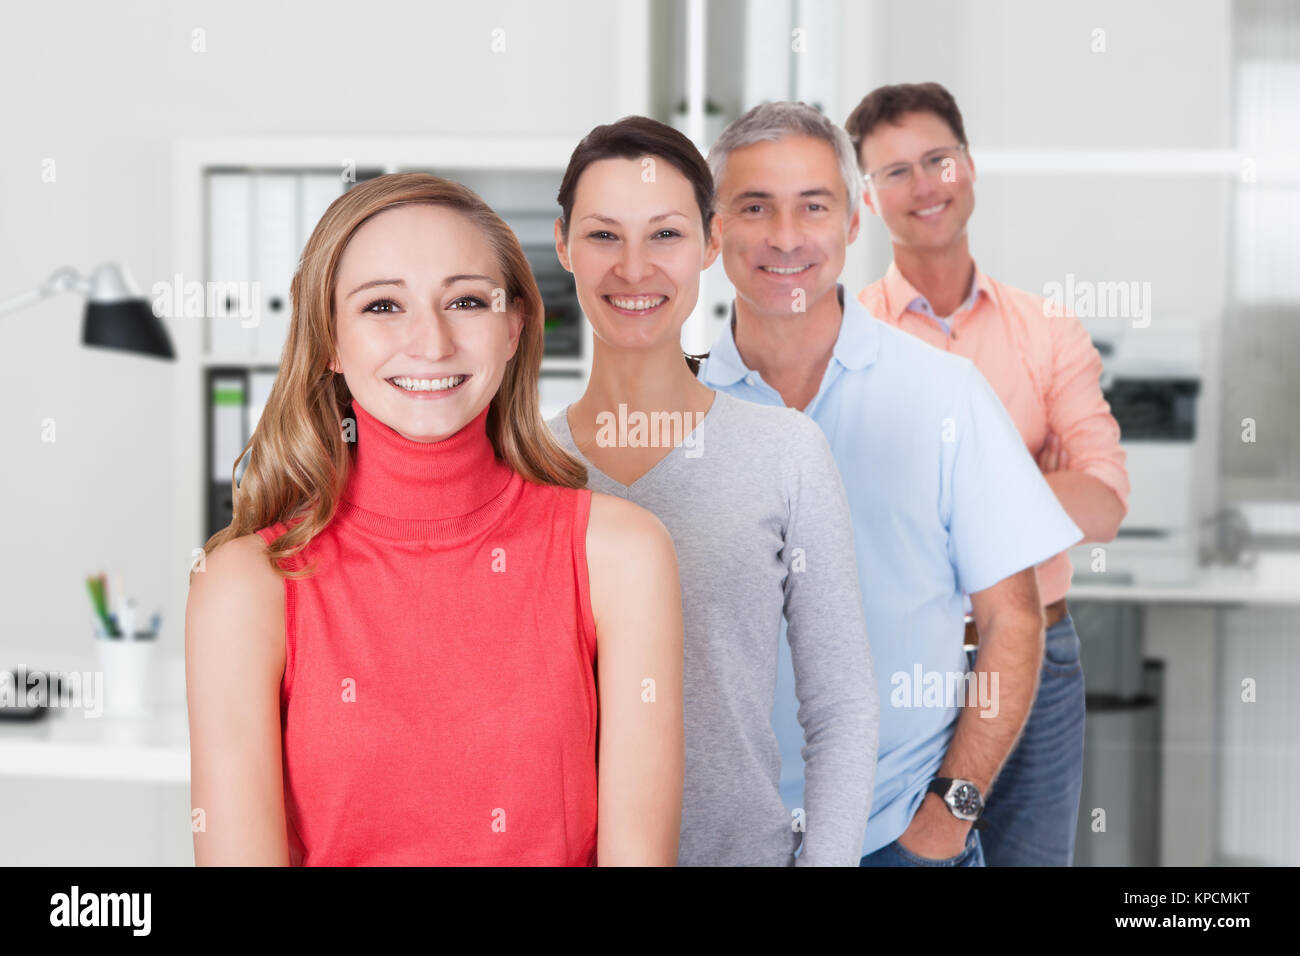 Four business associates in casual clothes Stock Photo